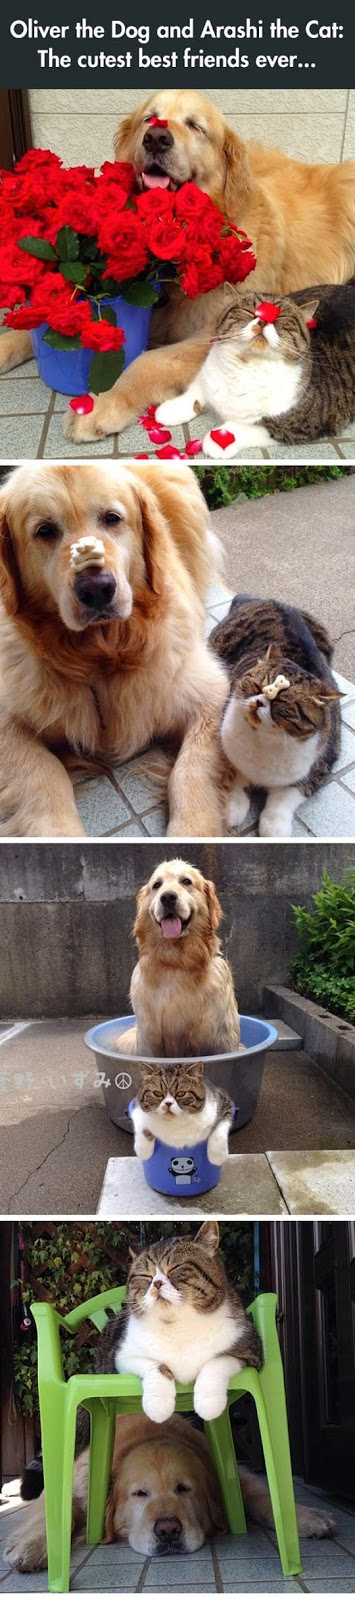 The Most Adorable Cute Dog Best Friends Ever